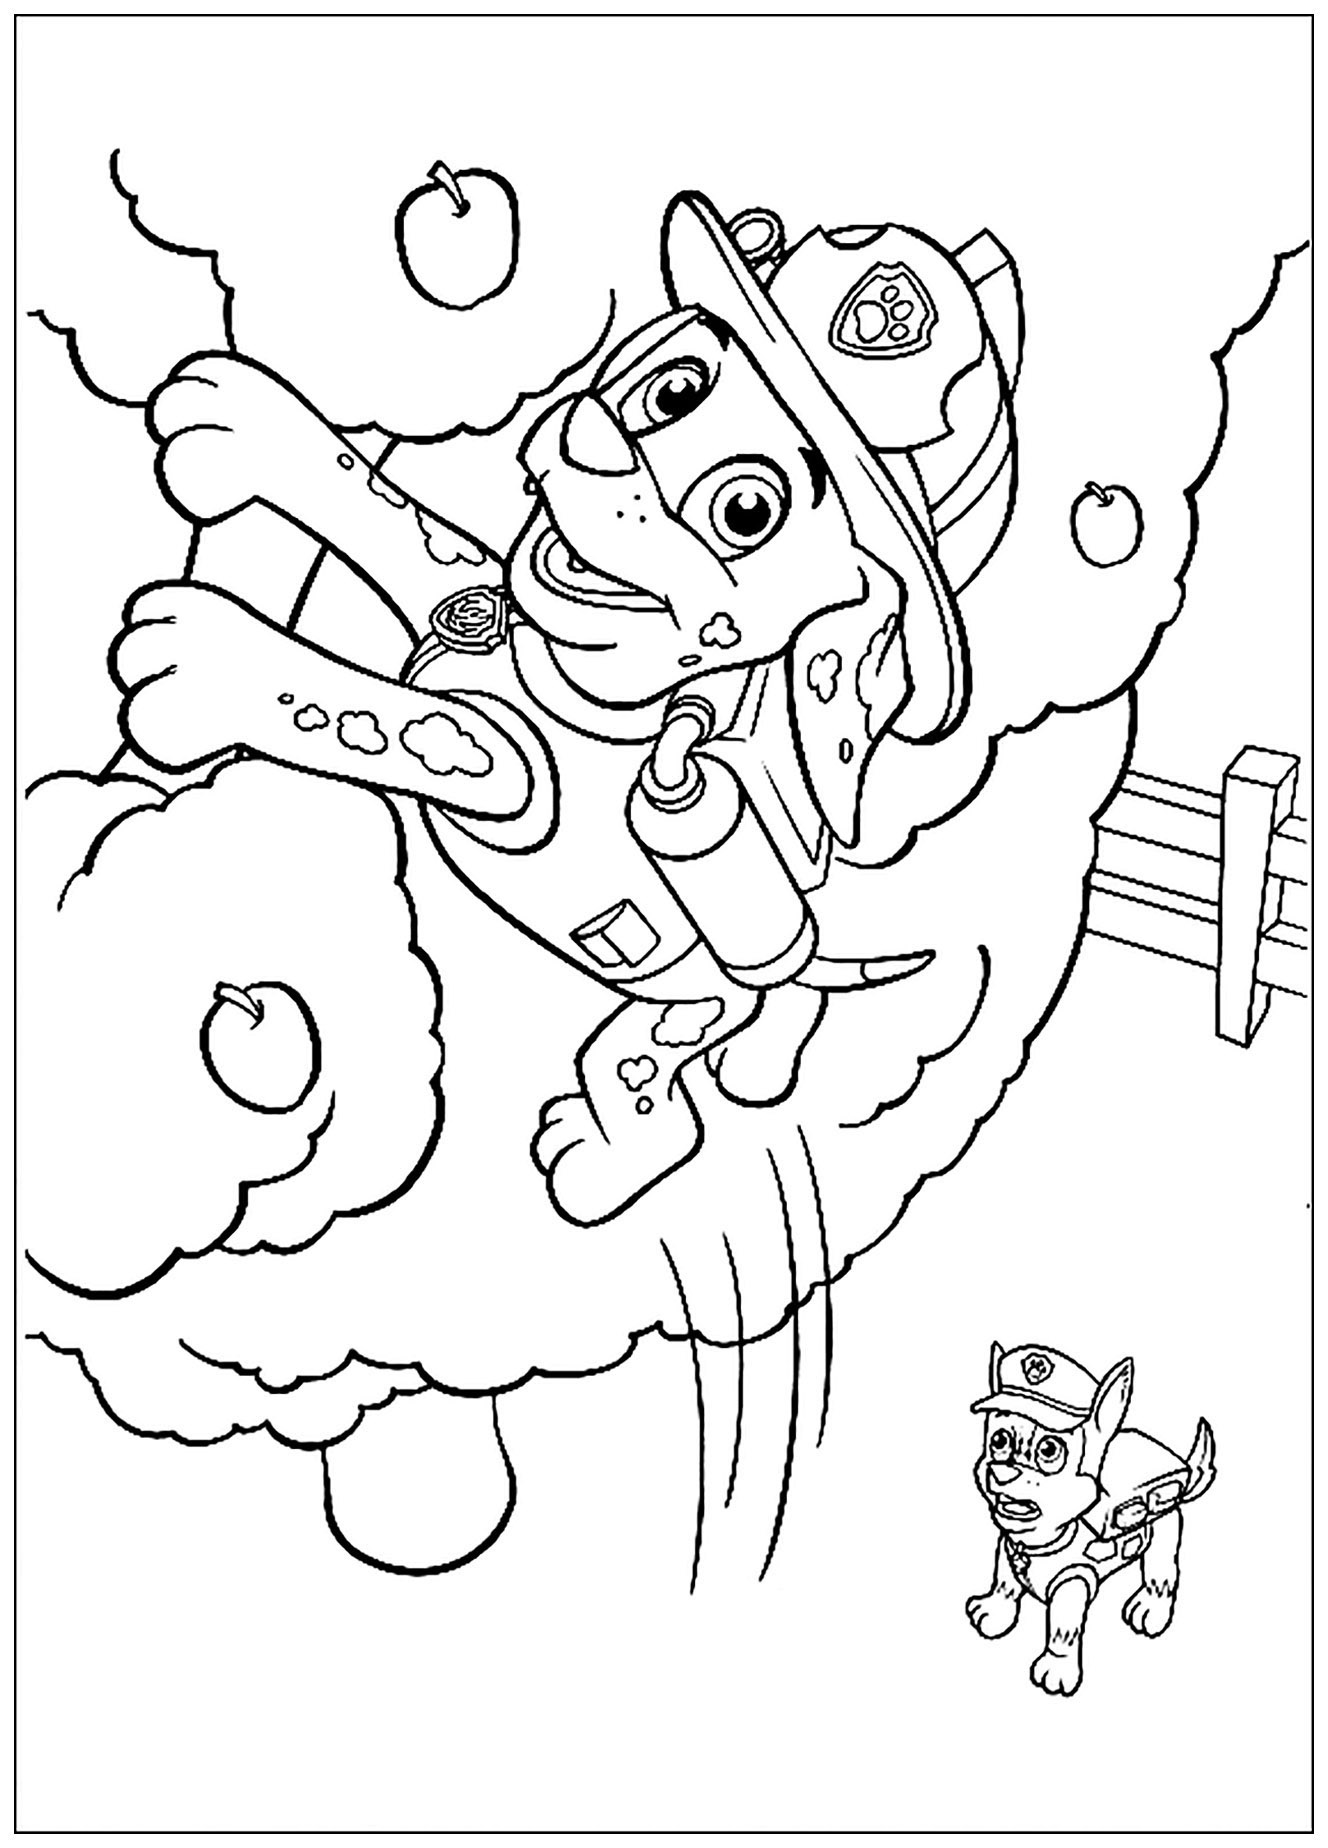 Simple Paw Patrol coloring page to download for free